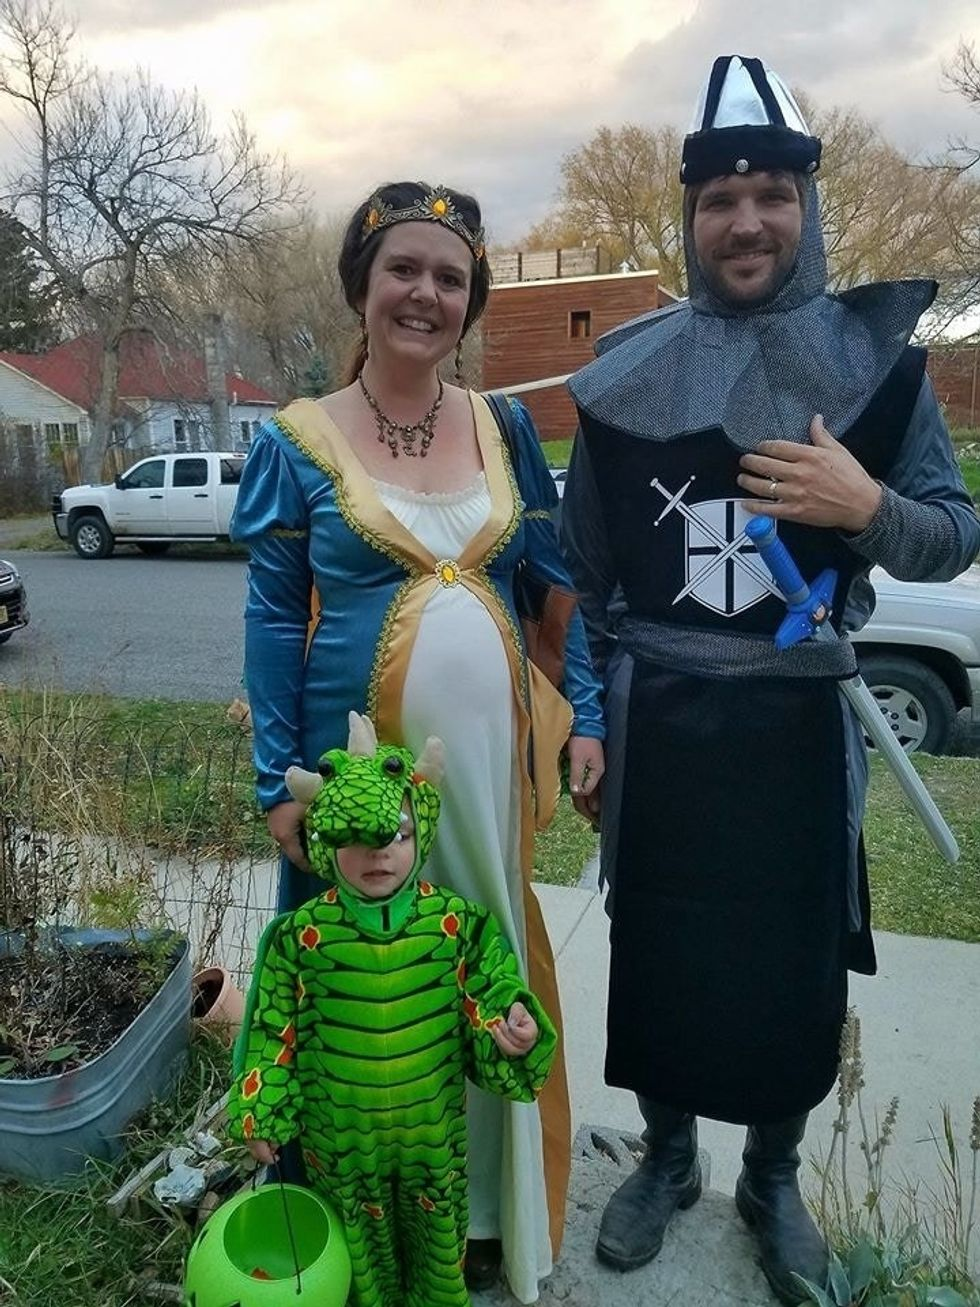 4 People Halloween Costume.40 Family Halloween Costume Ideas Everyone Will Love Motherly